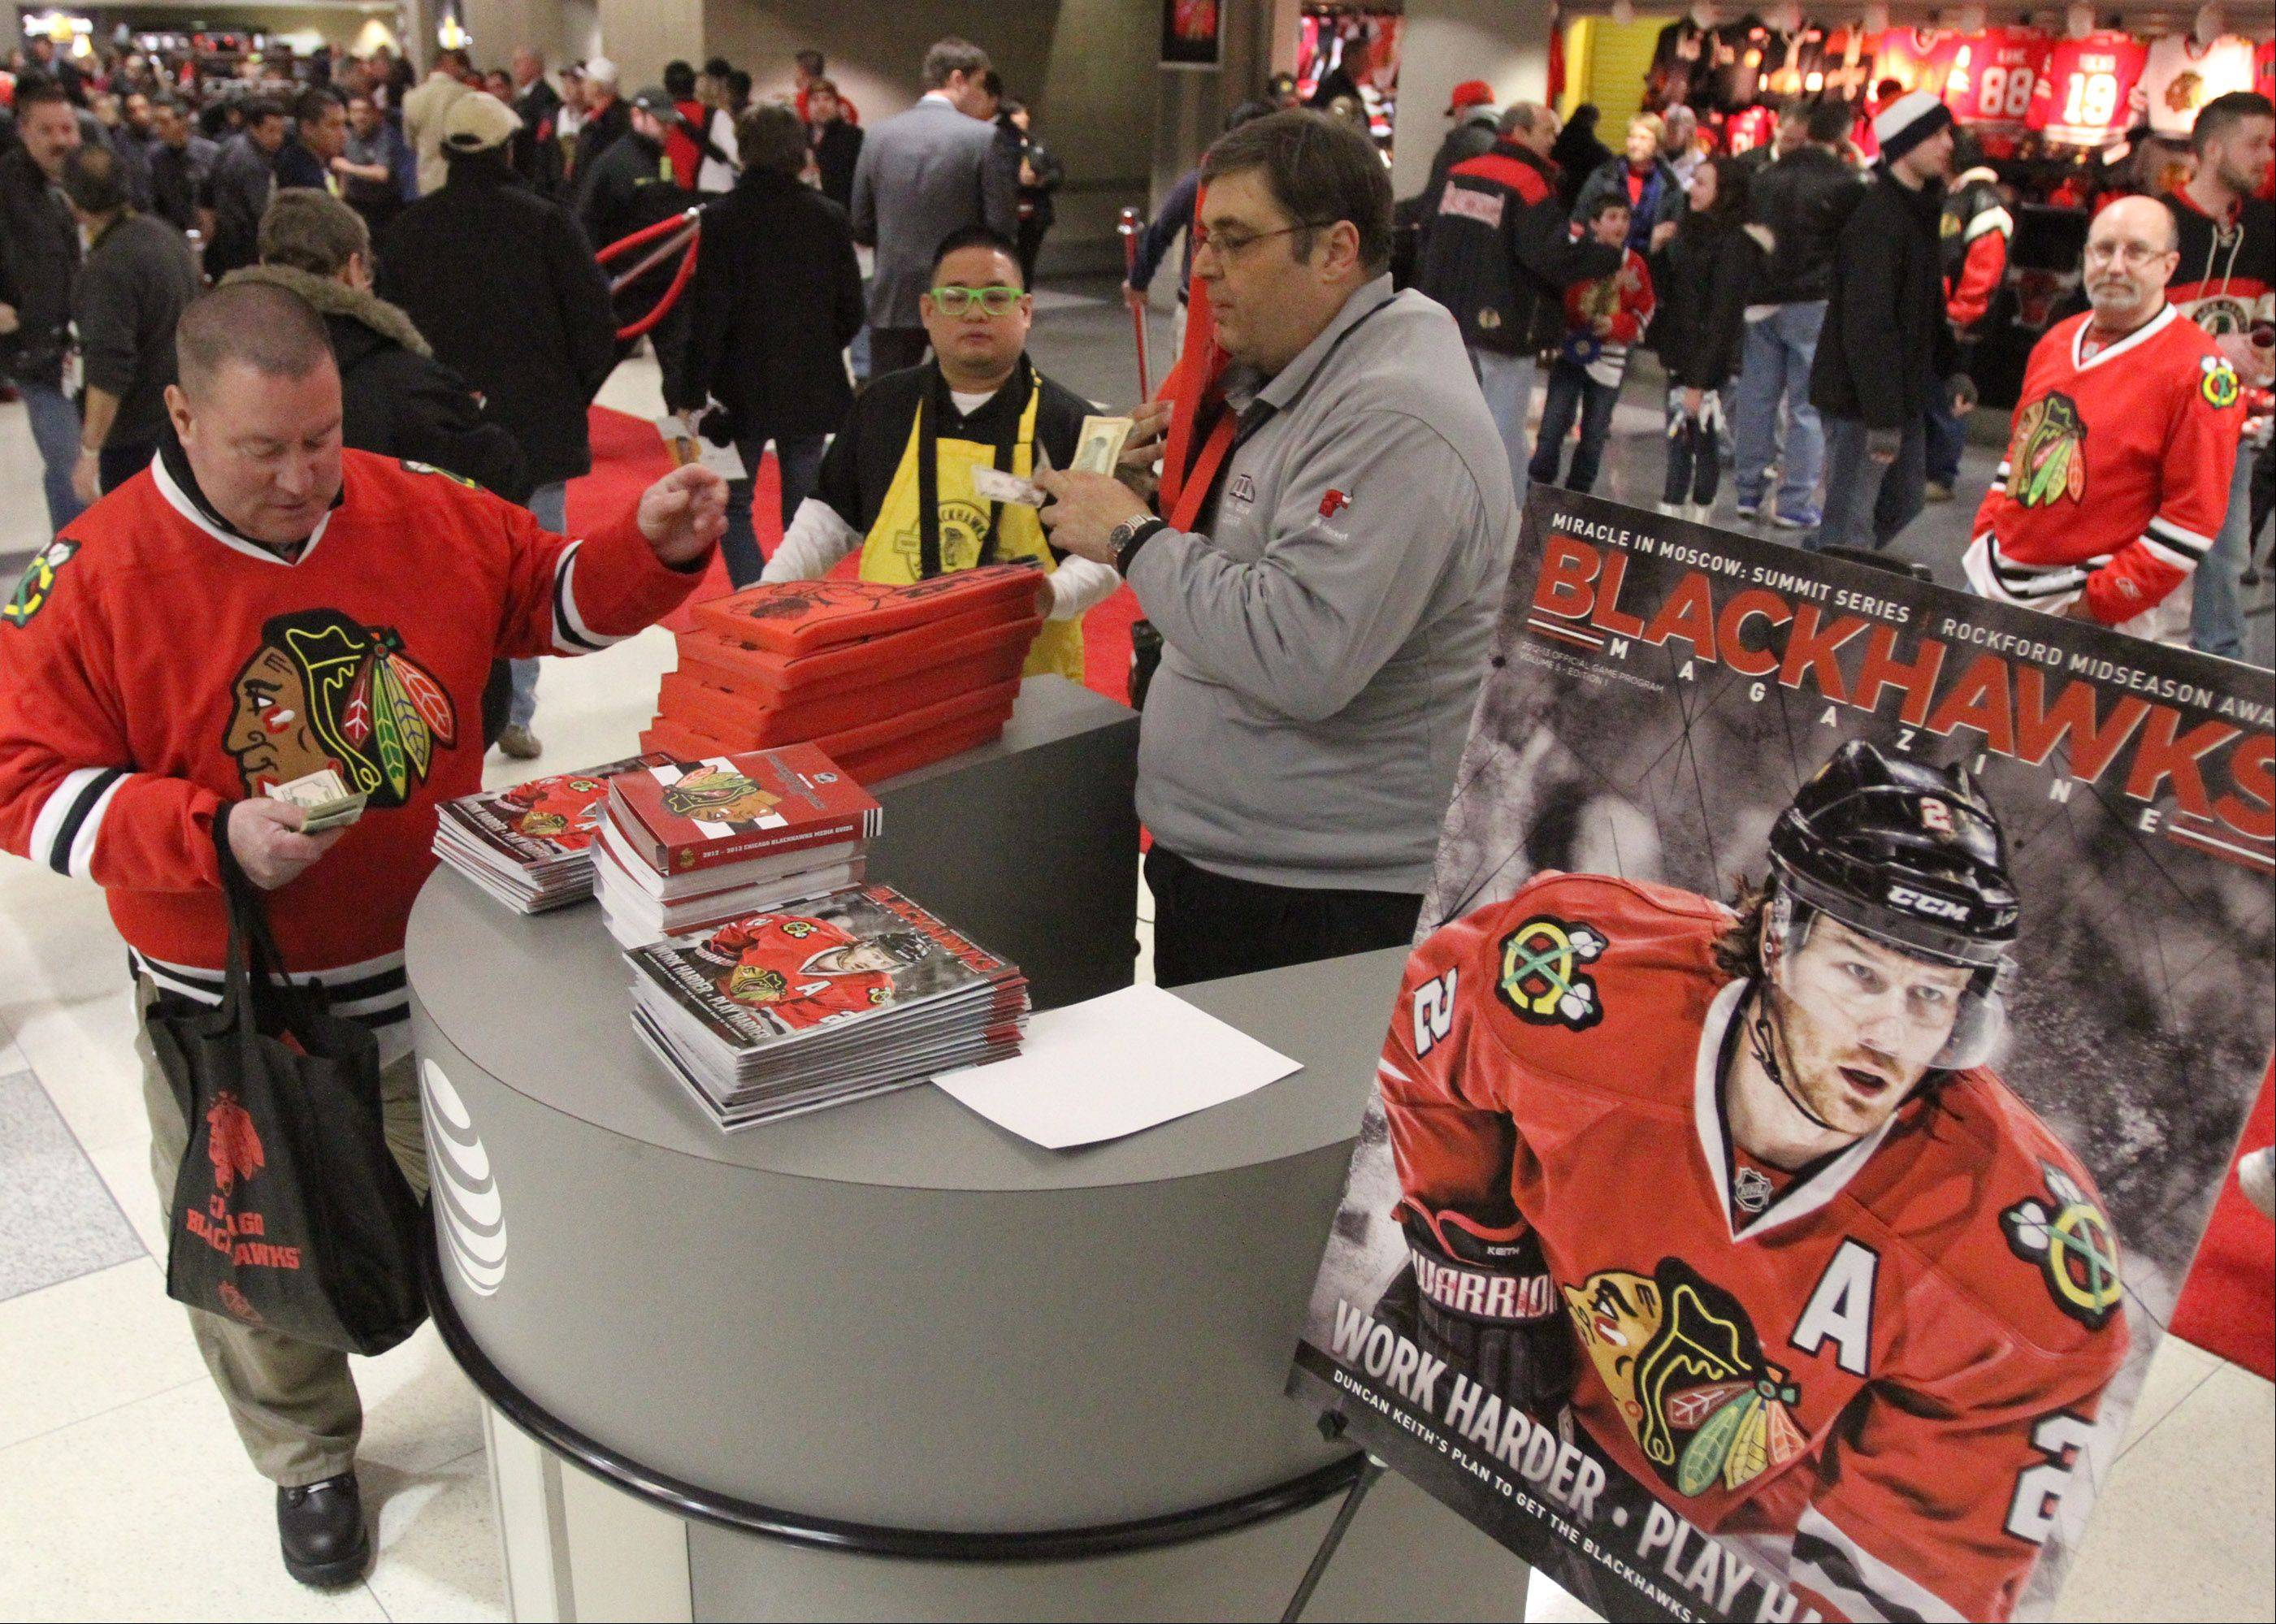 Mike Segvich sells Chicago Blackhawks programs before the game.